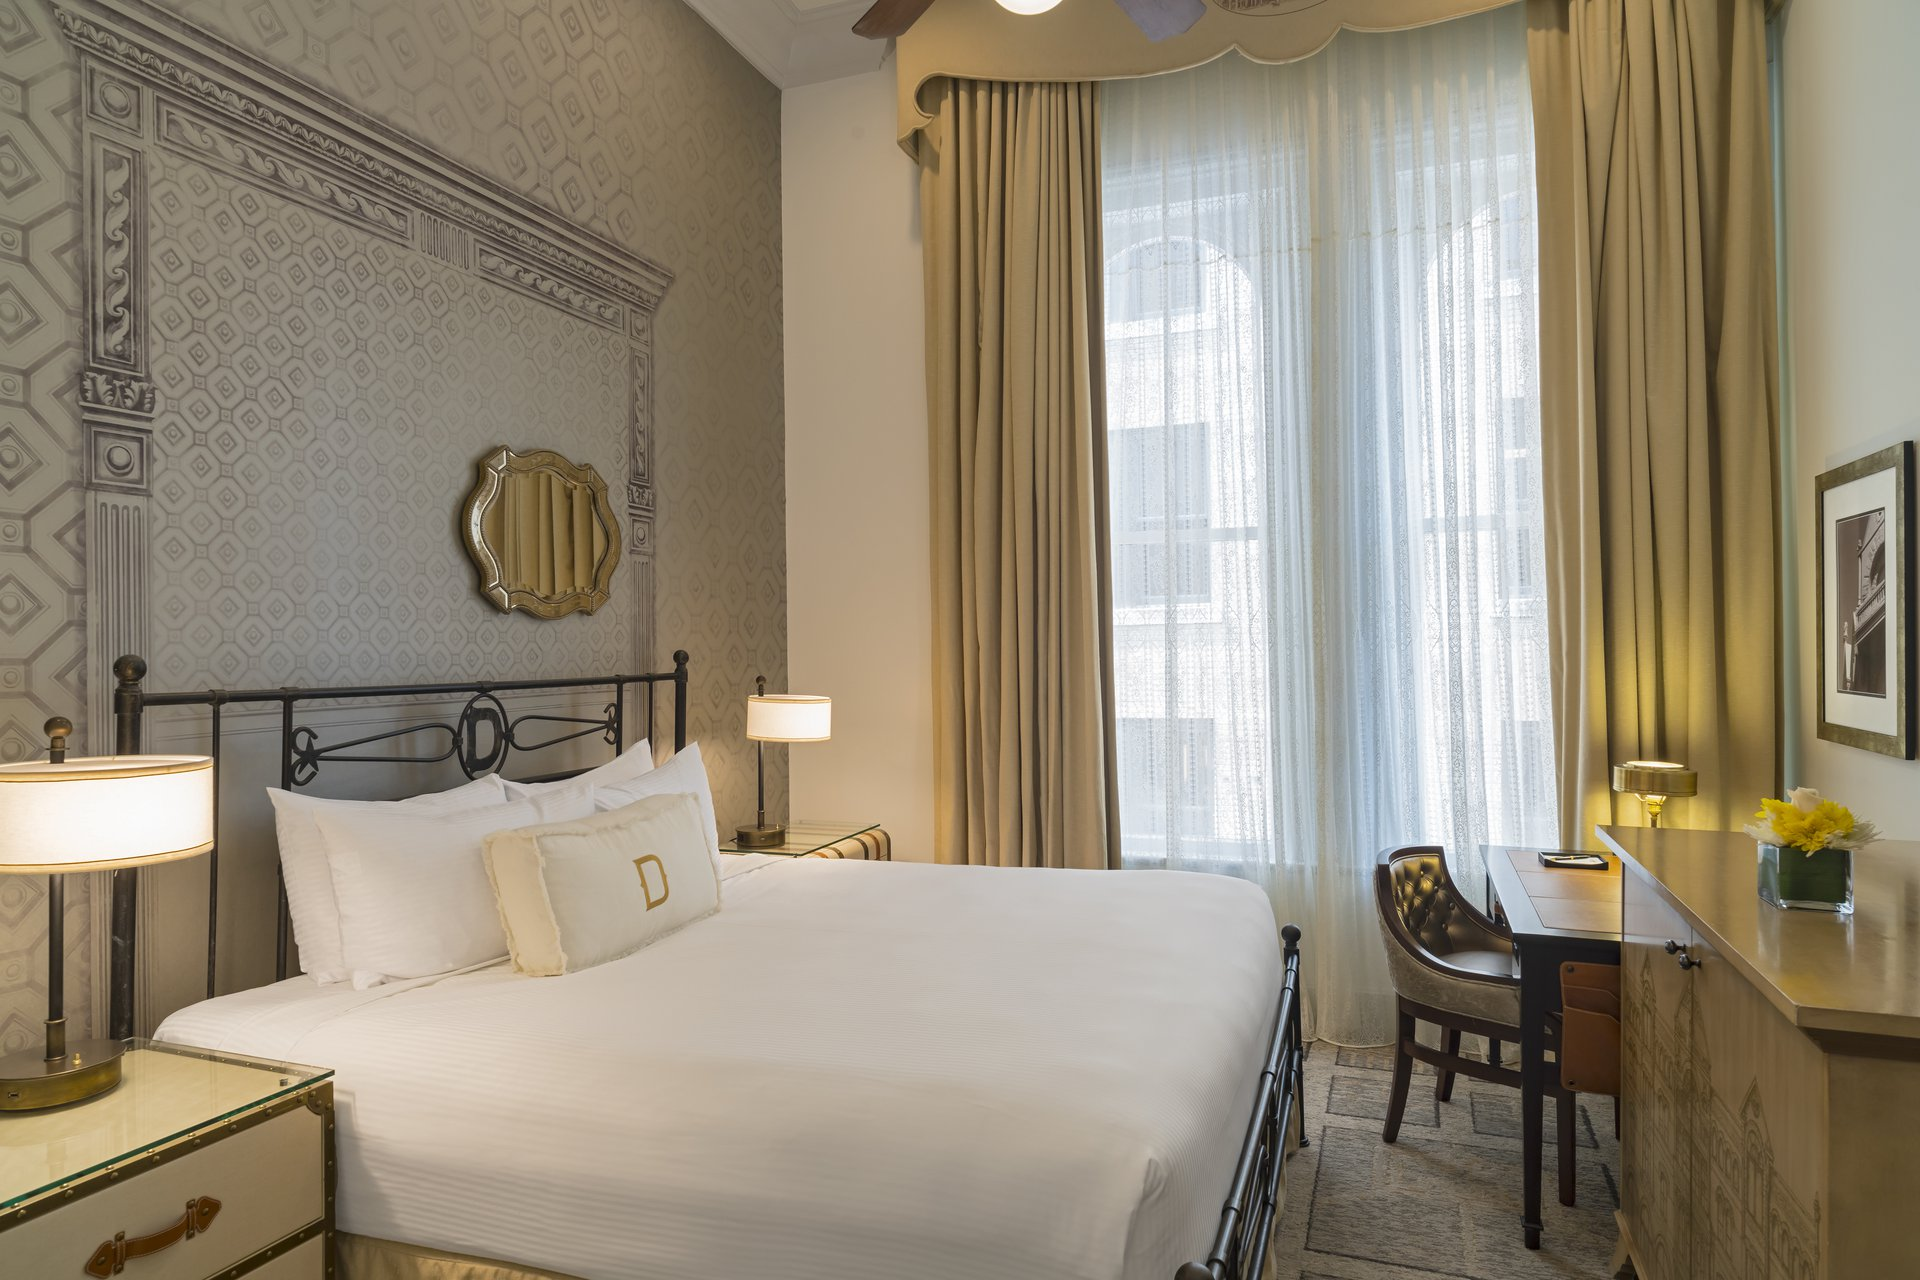 Boutique Hotel Rooms in Austin TX   The Driskill Unbound Collection by Hyatt & Boutique Hotel Rooms in Austin TX   The Driskill Unbound Collection ...